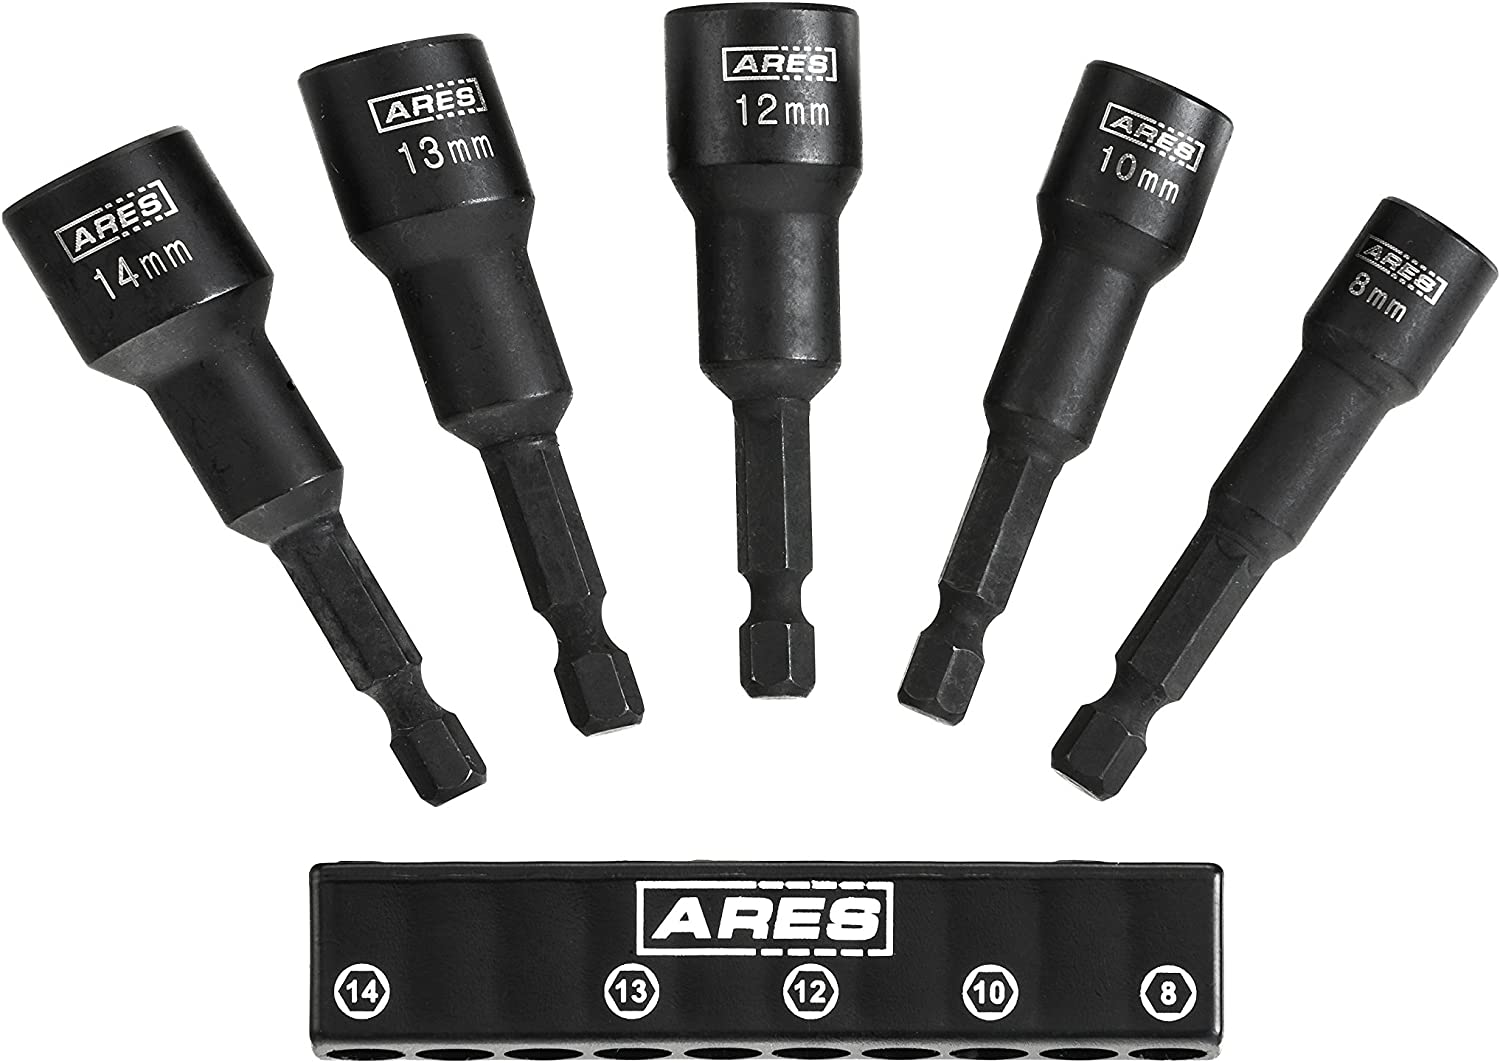 ARES 70029 - Metric Impact Magnetic Nut Driver Set - 2 1/2-Inch Impact Grade Nut Setter with Industrial Strength Magnet